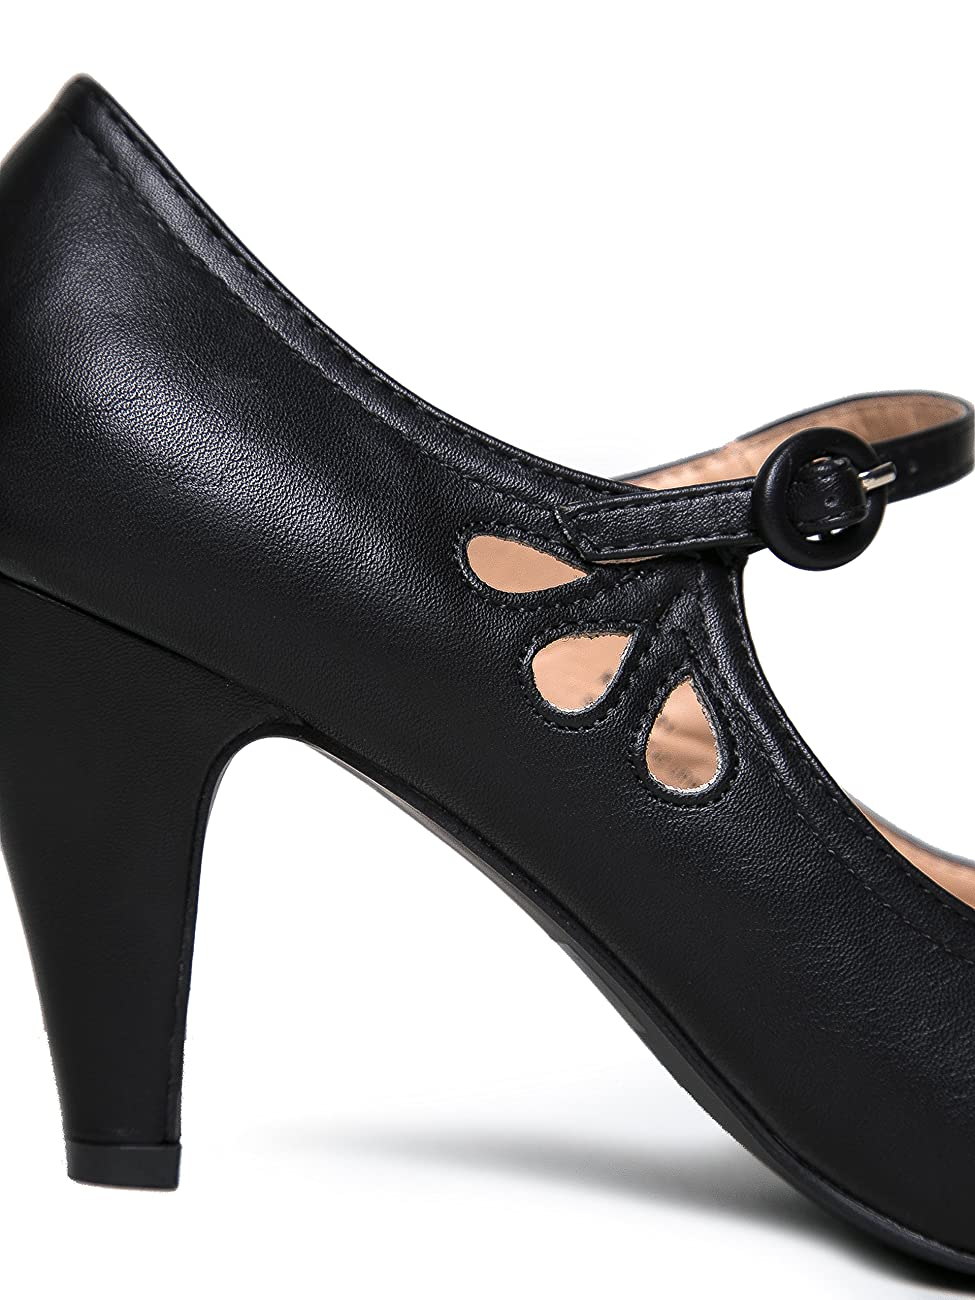 Kitten Heels Mary Jane Pumps By Zooshoo- Adorable Vintage Shoes- Unique Round Toe Design With An Adjustable Strap,Black Pu,5.5 B(M) US 3